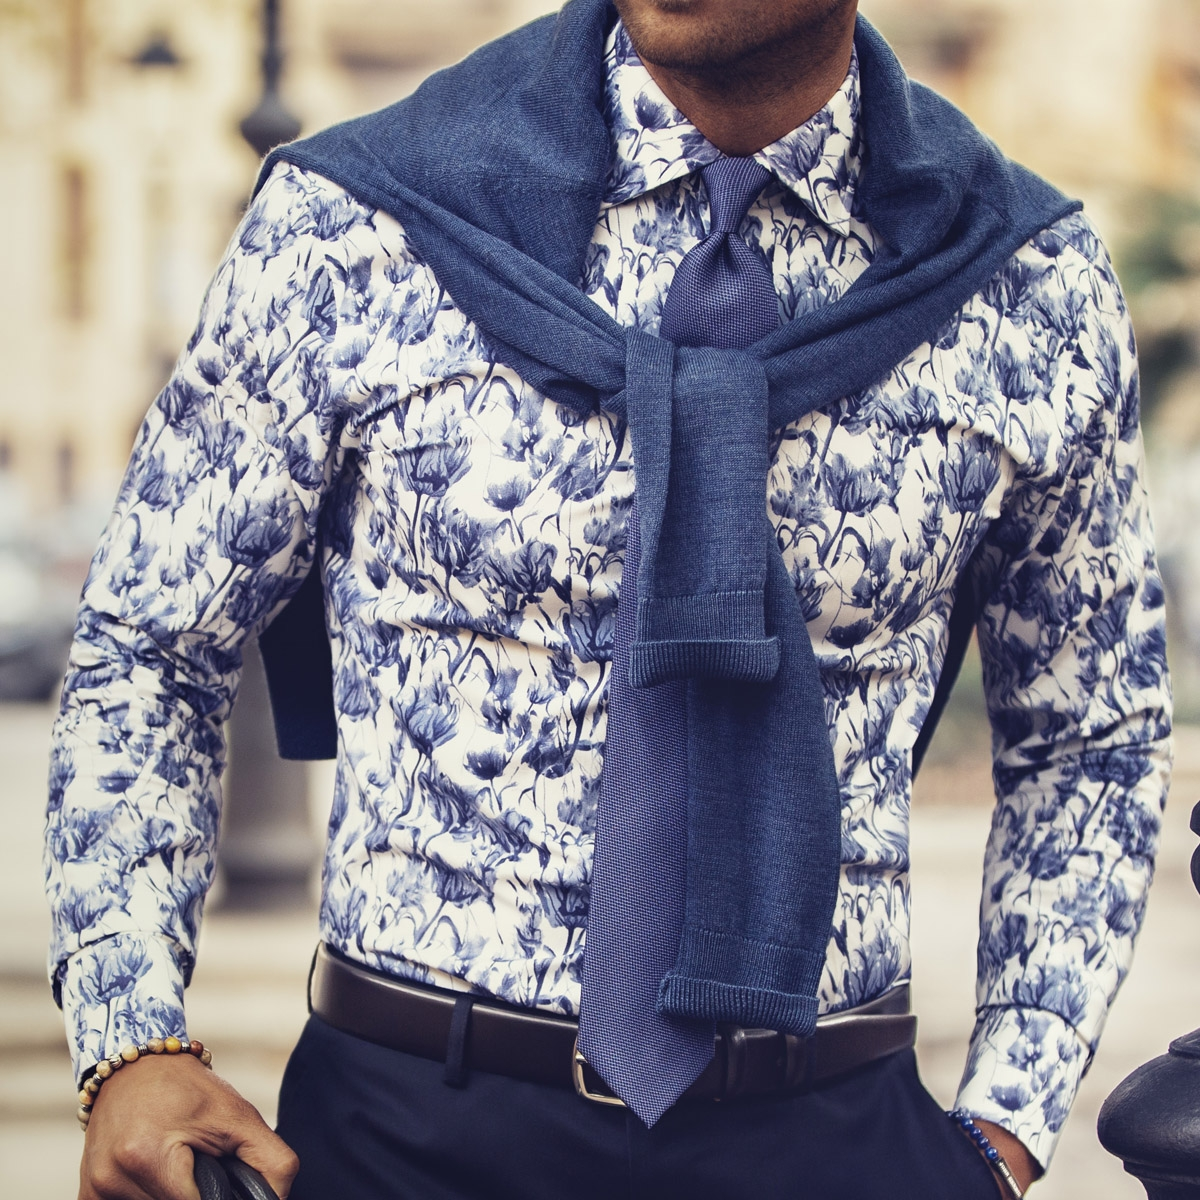 john henric blue and white patterned shirt